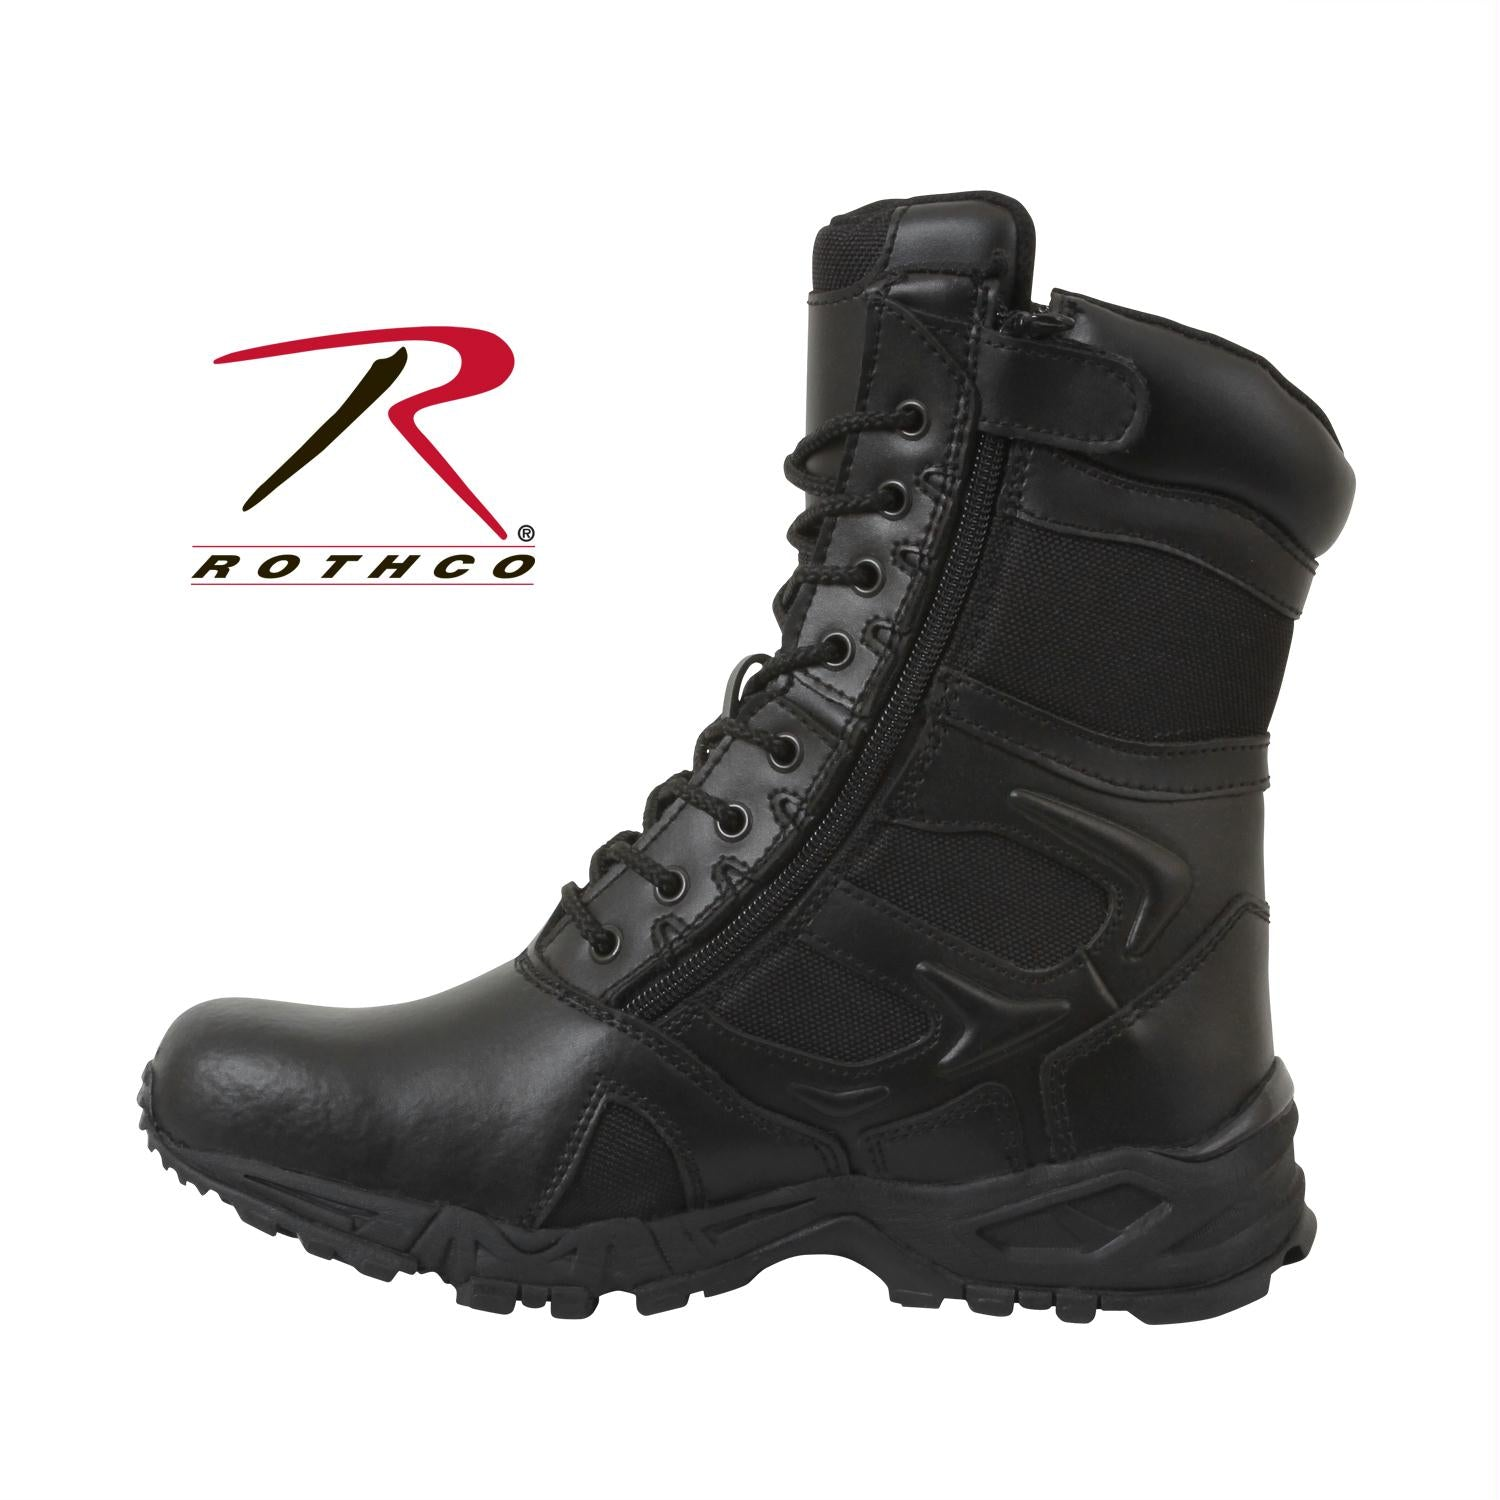 Rothco Forced Entry Deployment Boot With Side Zipper - 9 / Regular